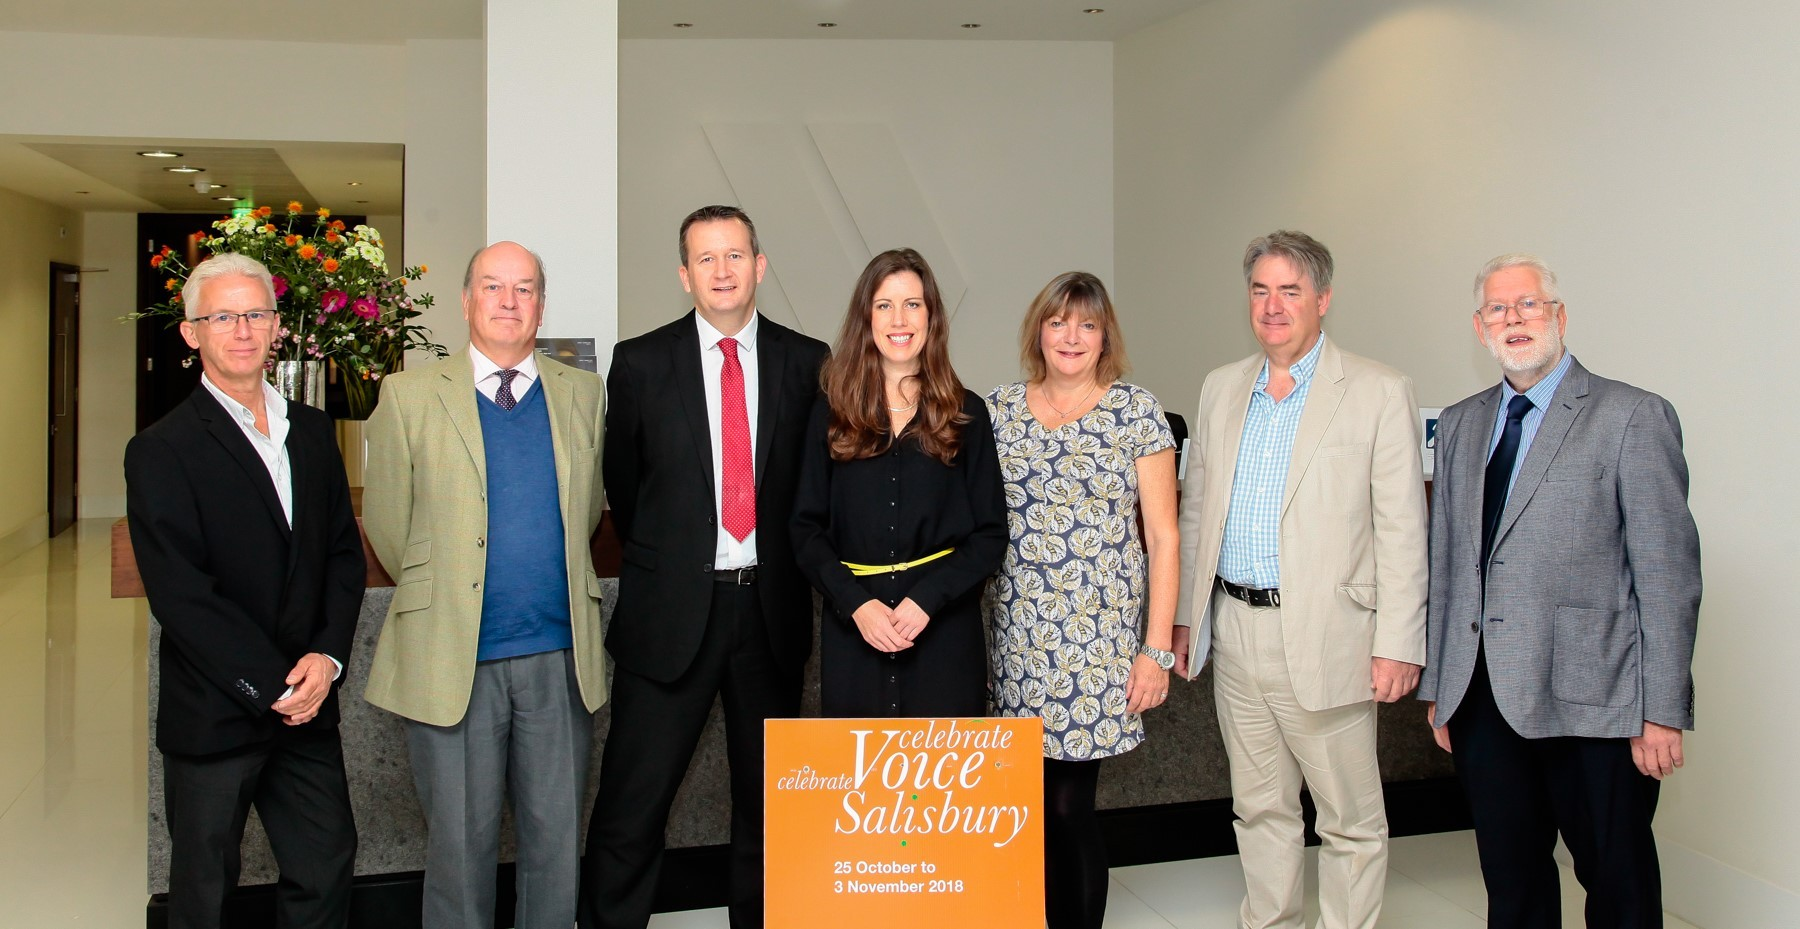 Celebrate Voice sponsors and supporters: John Rose, Bertie Gore Browne (GBIM), Keith Phillimore (Smith & Williamson), Lynsey Docherty (Celebrate Voice), Jane Kennedy (Wiltshire Life Magazine), Stephen Oxley (Wilsons), Steve Godwin (Salisbury BID)    P